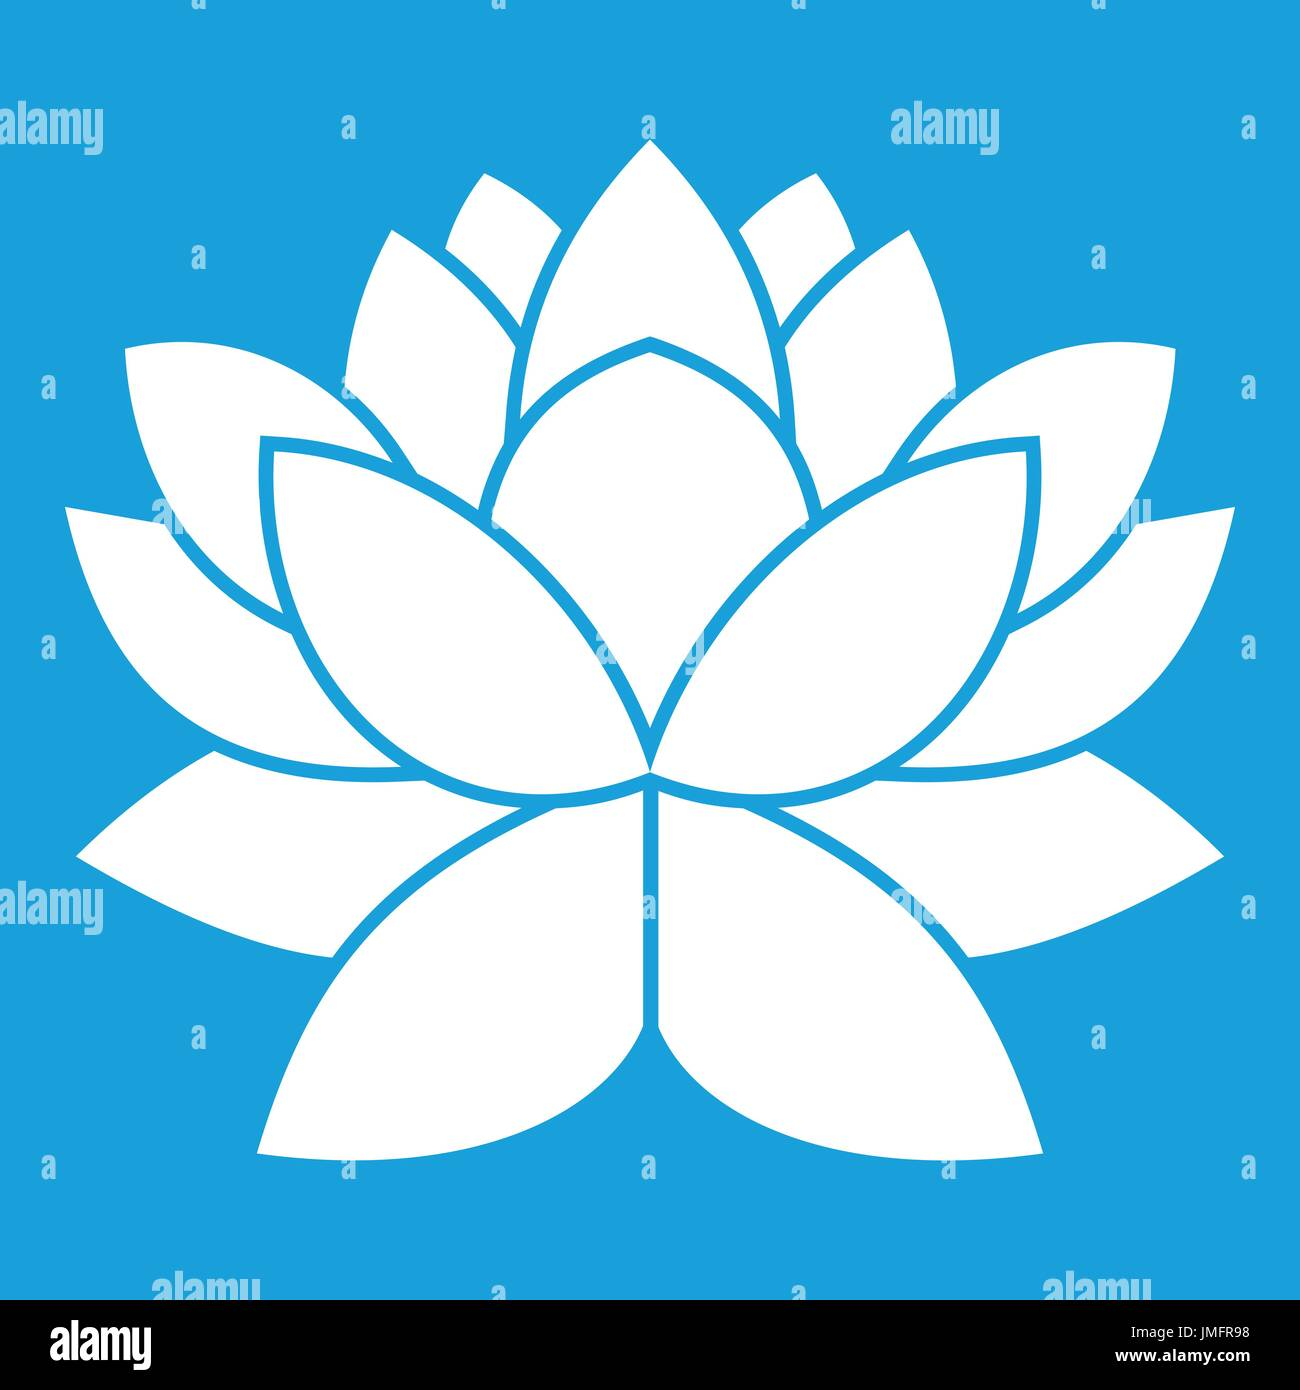 Lotus flower icon white isolated on blue background vector stock lotus flower icon white isolated on blue background vector illustration izmirmasajfo